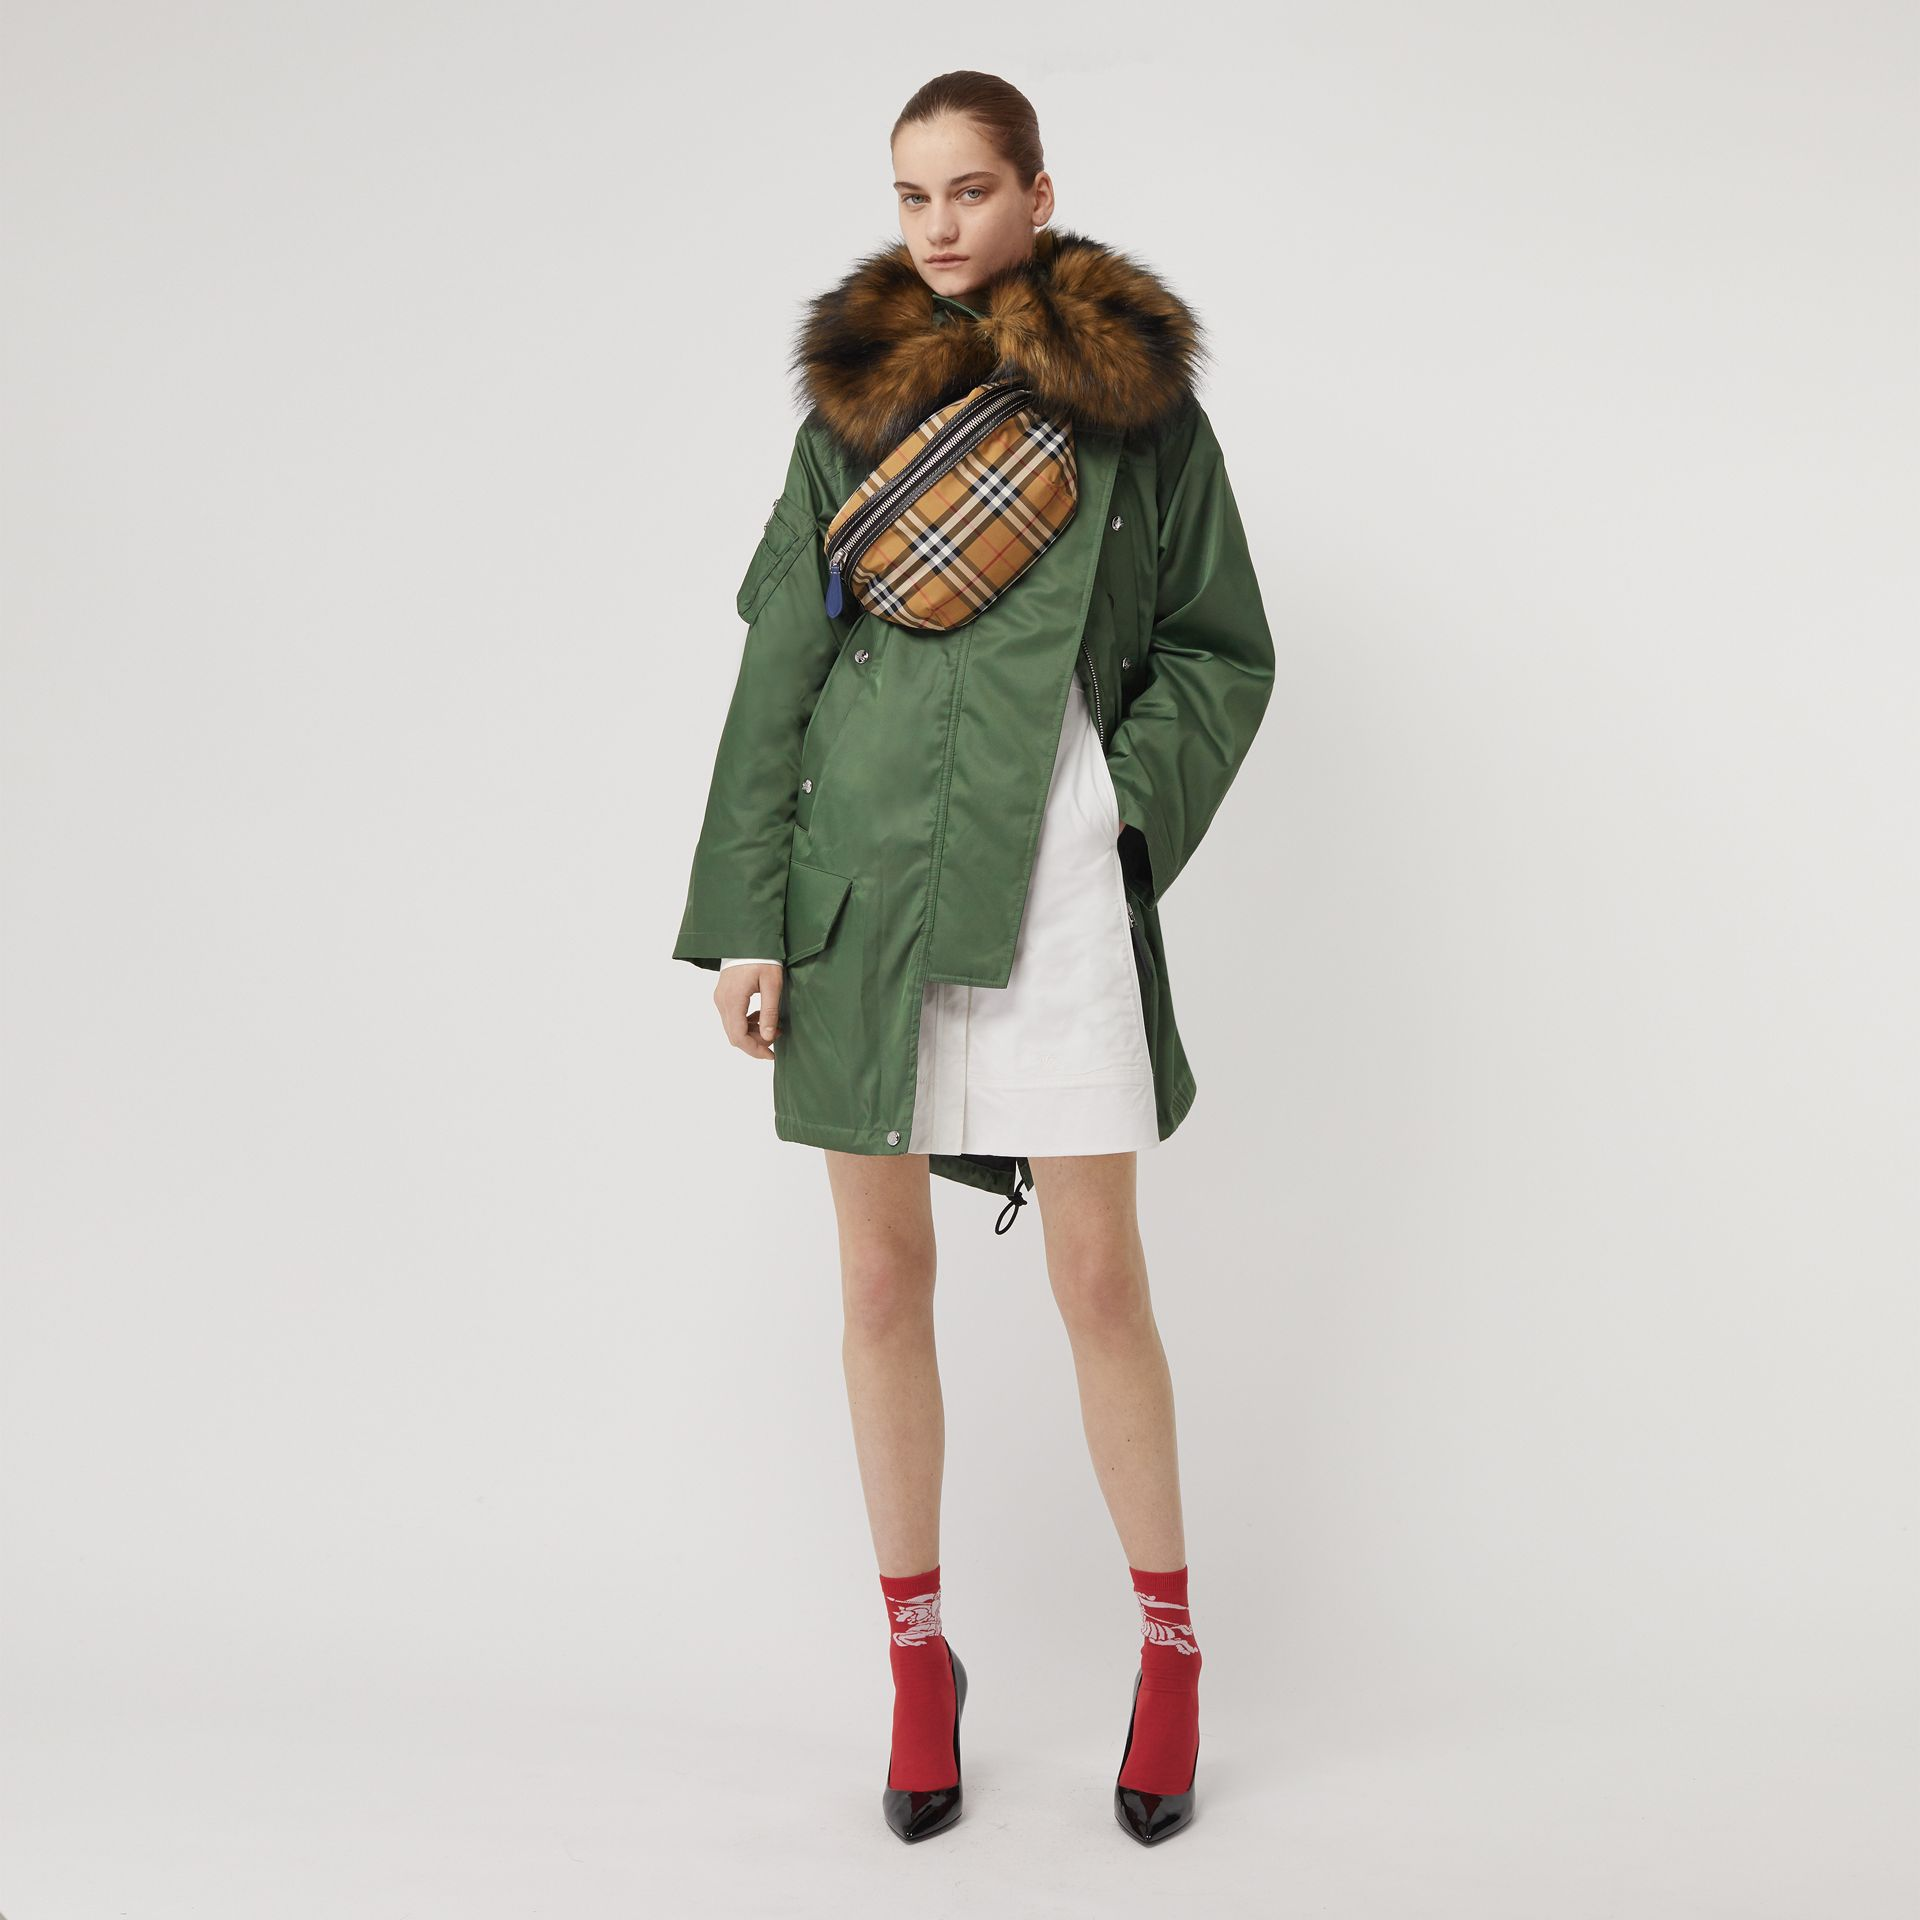 Faux Fur Trim Parka with Detachable Warmer in Grass Green - Women | Burberry - gallery image 0